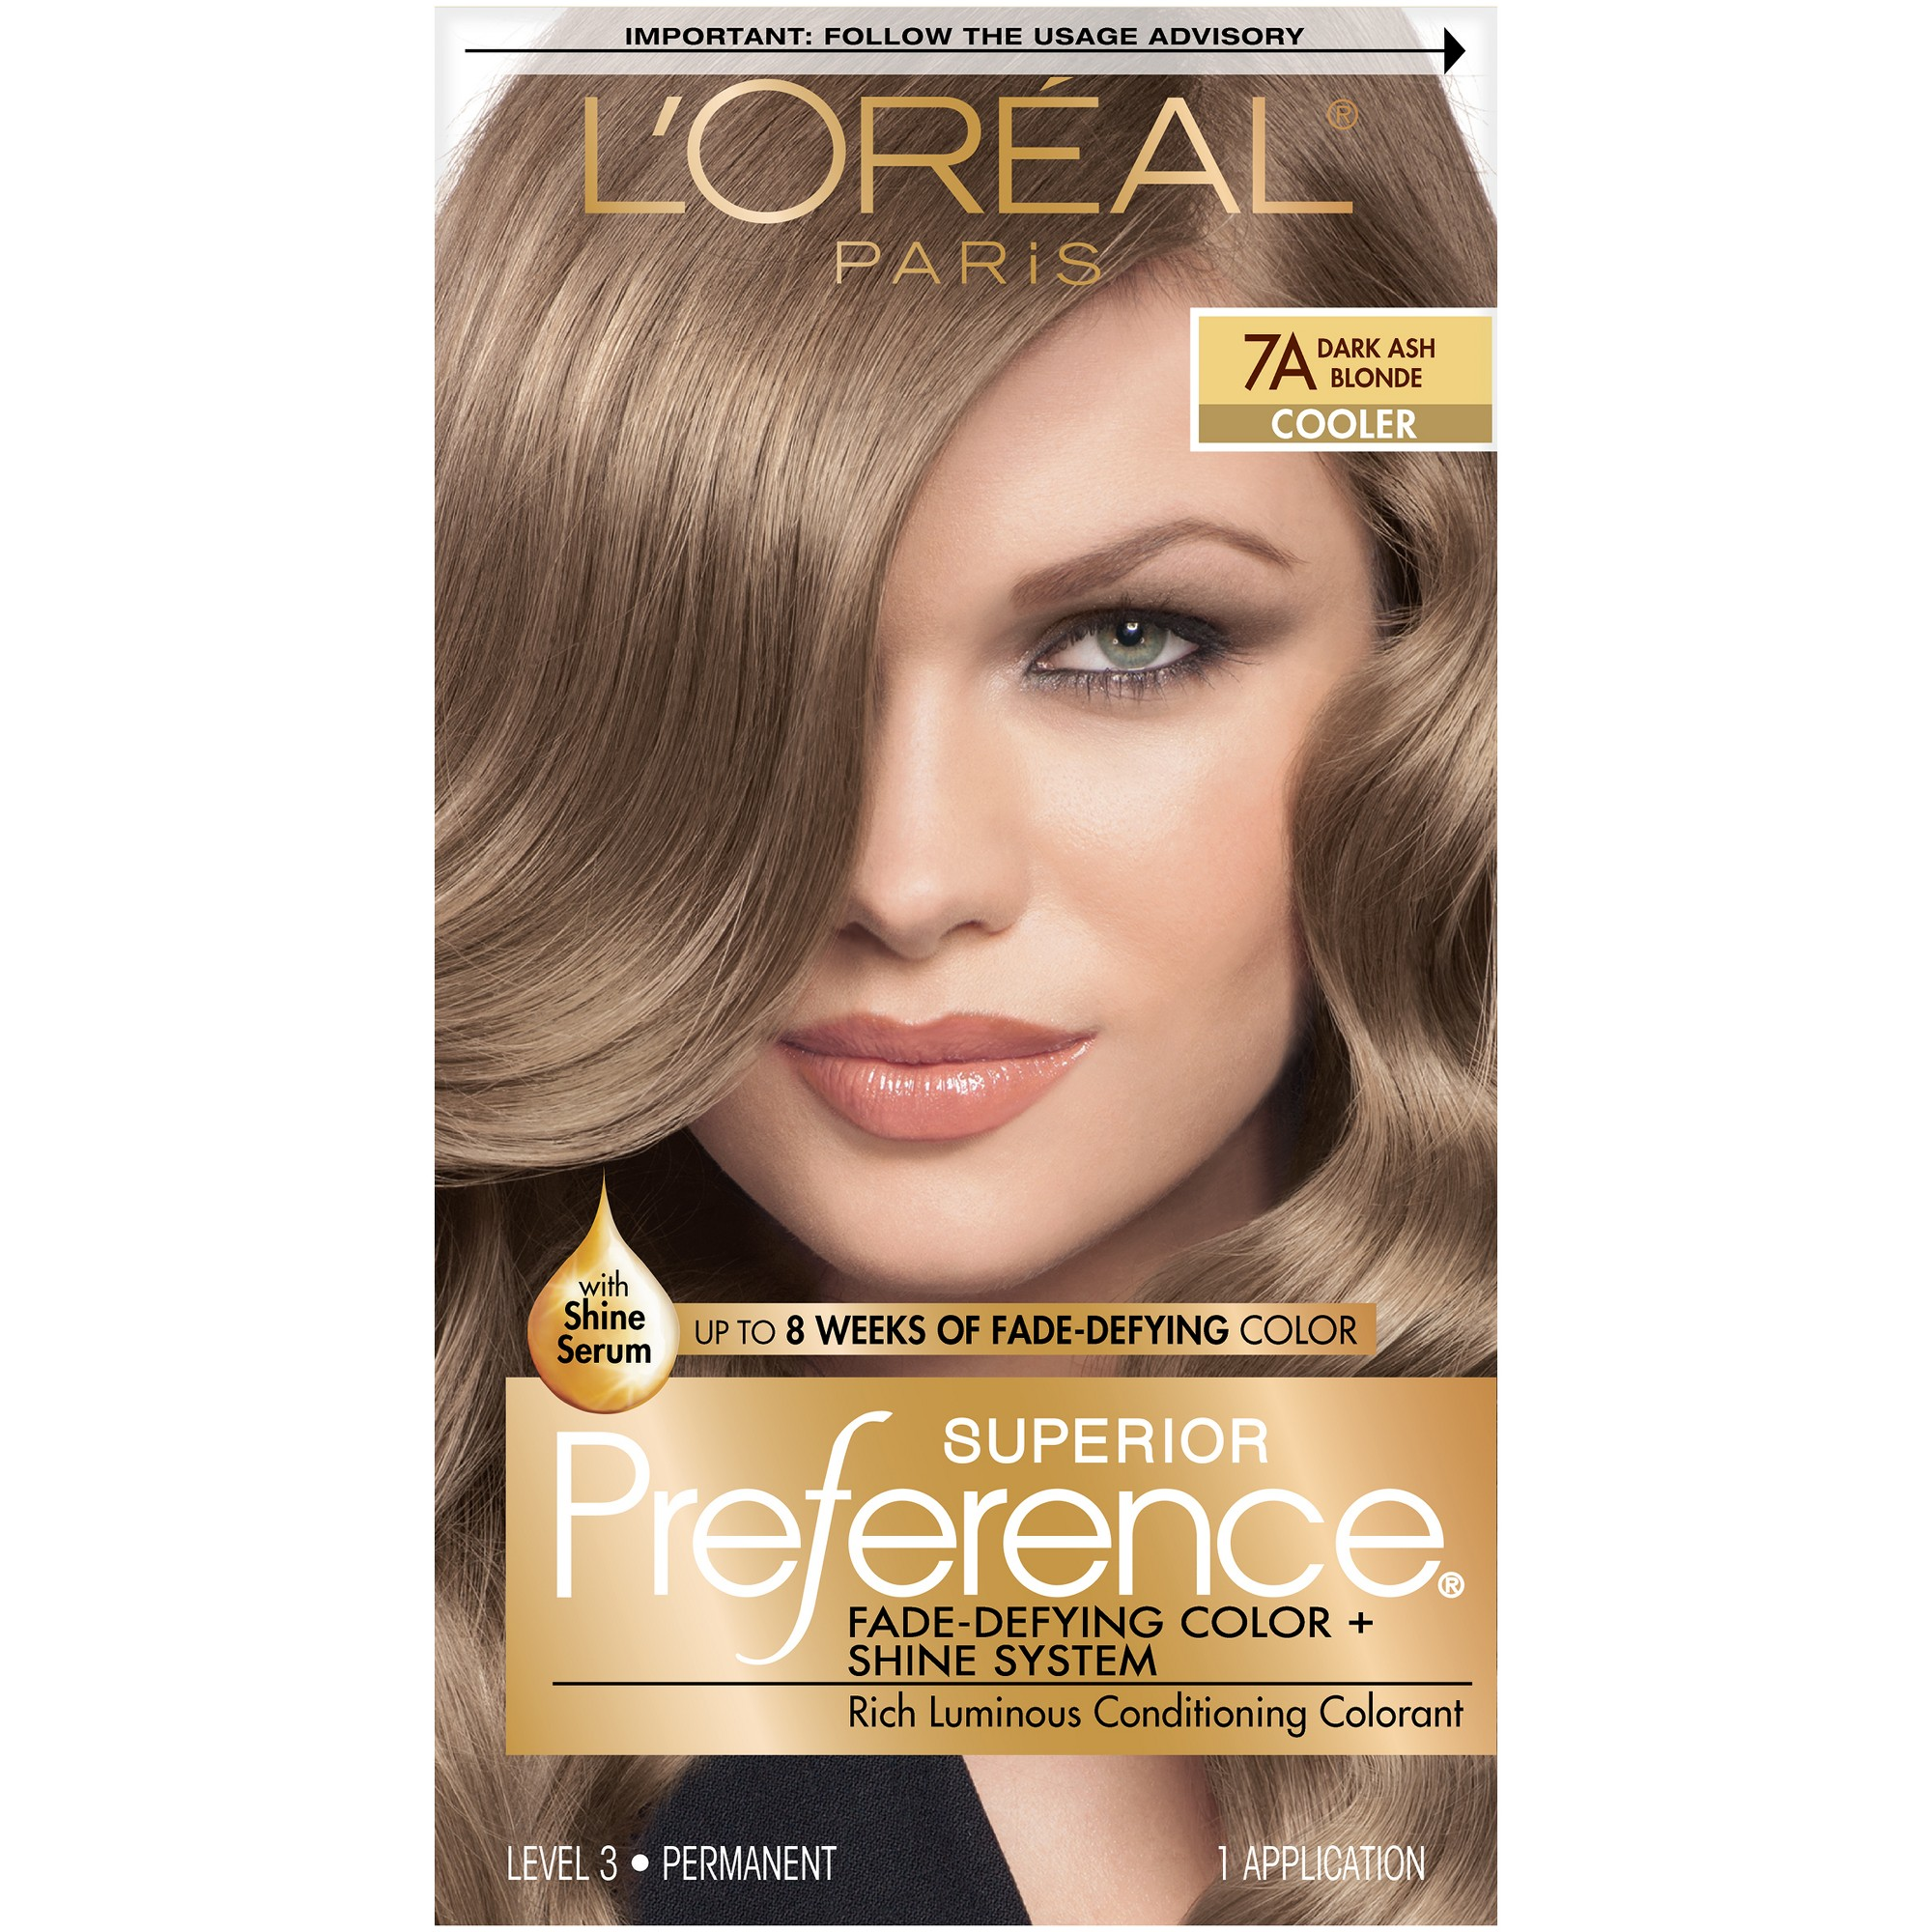 L Oreal Paris Superior Preference Fade Defying Color Shine System 6 5 Fl Oz 7a Dark Ash Blonde 1 Kit Dark Ash Blonde At Home Hair Color Luminous Hair Color